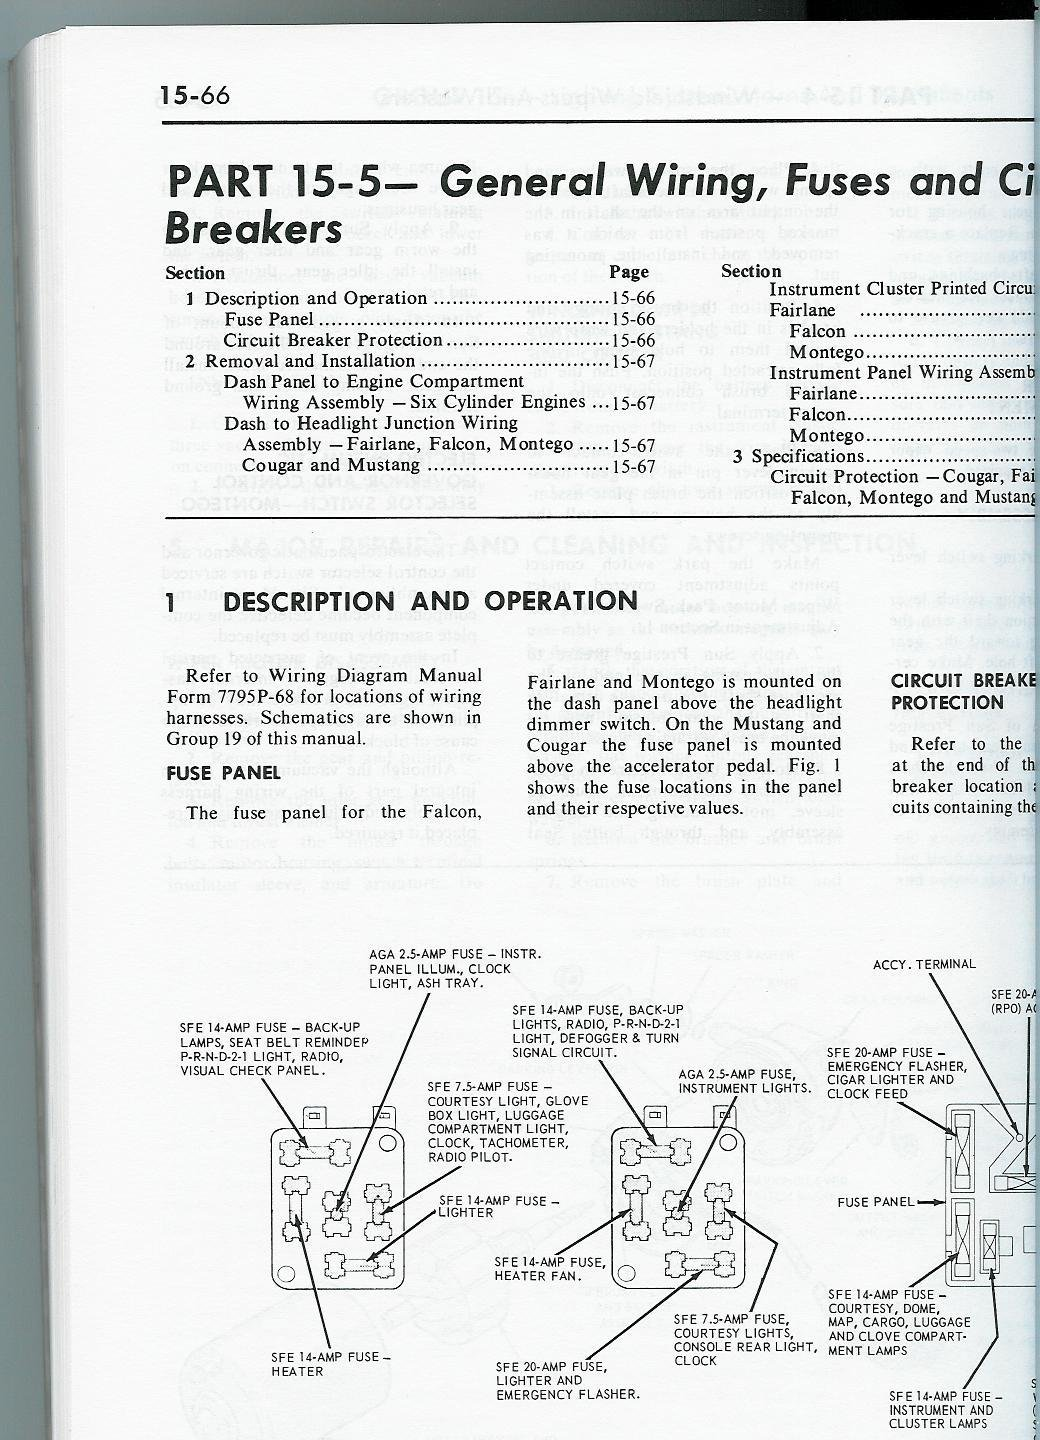 Wiring Diagram Pontiac Grand Prix Accelerator on 2001 pontiac aztek wiring diagram, 1964 pontiac grand prix wiring diagram, 2000 pontiac grand prix wiring diagram, 2007 pontiac grand prix wiring diagram, 1994 pontiac firebird wiring diagram, 1997 pontiac grand prix wiring diagram, 2004 chevrolet silverado 2500hd wiring diagram, 2002 grand prix radio wiring diagram, 2004 toyota highlander wiring diagram, 2003 pontiac grand prix wiring diagram, 2006 pontiac grand prix wiring diagram, 1998 pontiac grand prix wiring diagram, 2001 pontiac grand prix wiring diagram, 1994 pontiac grand prix wiring diagram, 1995 pontiac grand prix wiring diagram, 2002 pontiac grand prix wiring diagram, 2004 saab 9-5 wiring diagram, 2004 chevrolet tahoe wiring diagram, 1999 pontiac grand prix wiring diagram, 2003 subaru forester wiring diagram,